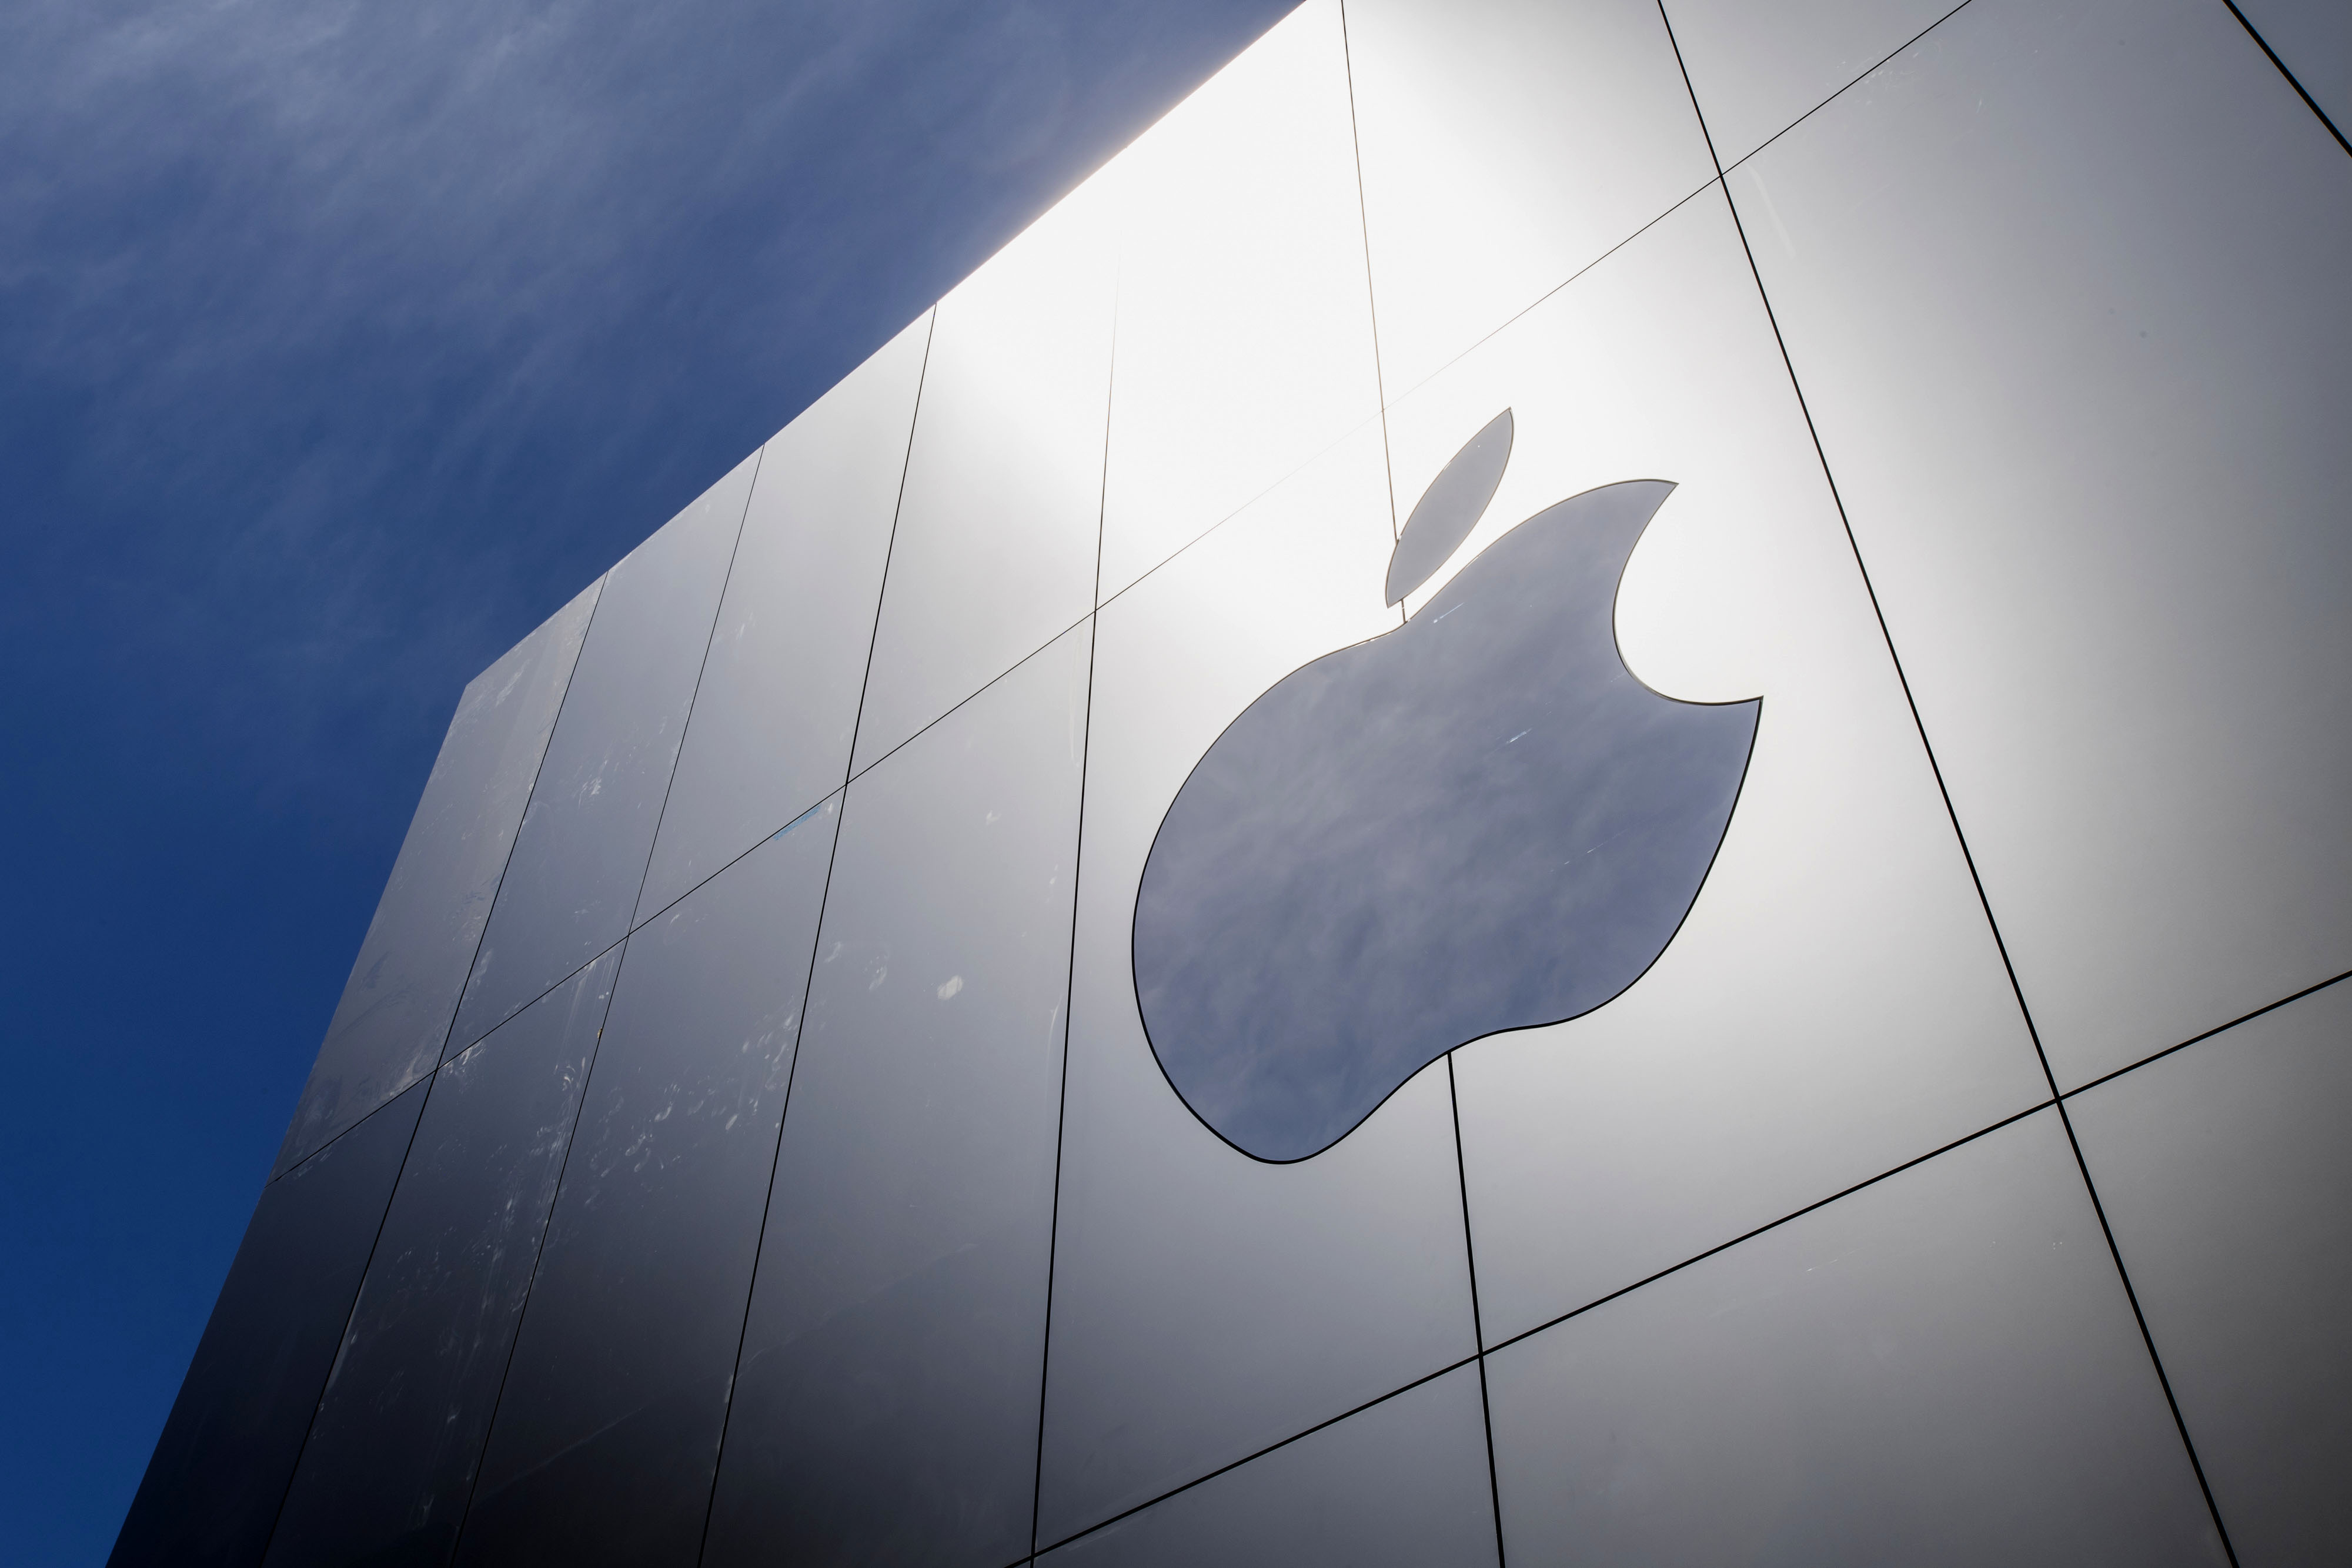 The Apple Inc. logo is seen outside of the company's new flagship store at Union Square in San Francisco, California, U.S., on Thursday, May 19, 2016.